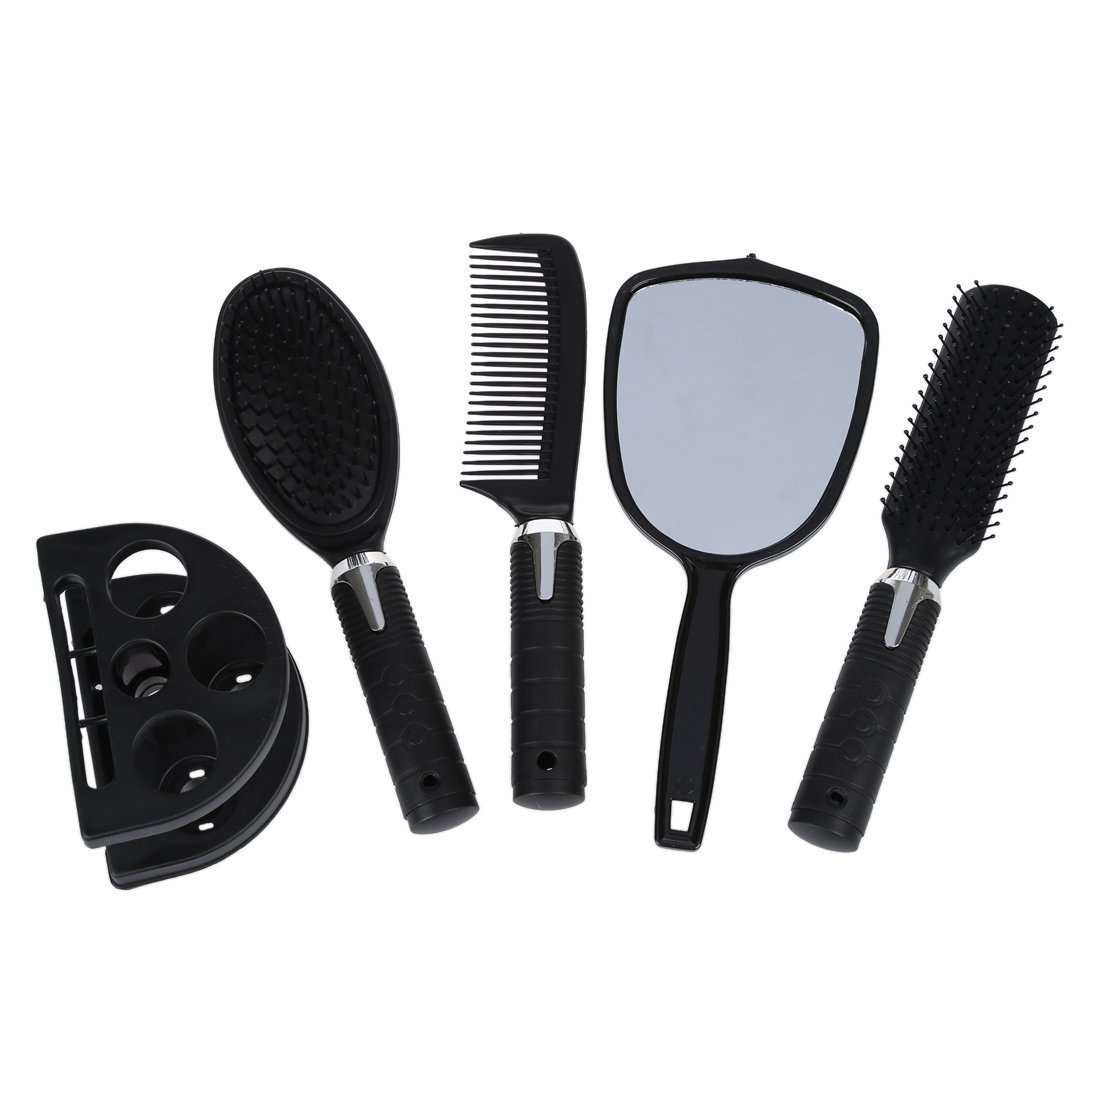 Hair Comb Mirror Holder Set - SODIAL(R) 5x Woman Lady Hair brush massage comb mirror set with mirror and support SPAGT46477